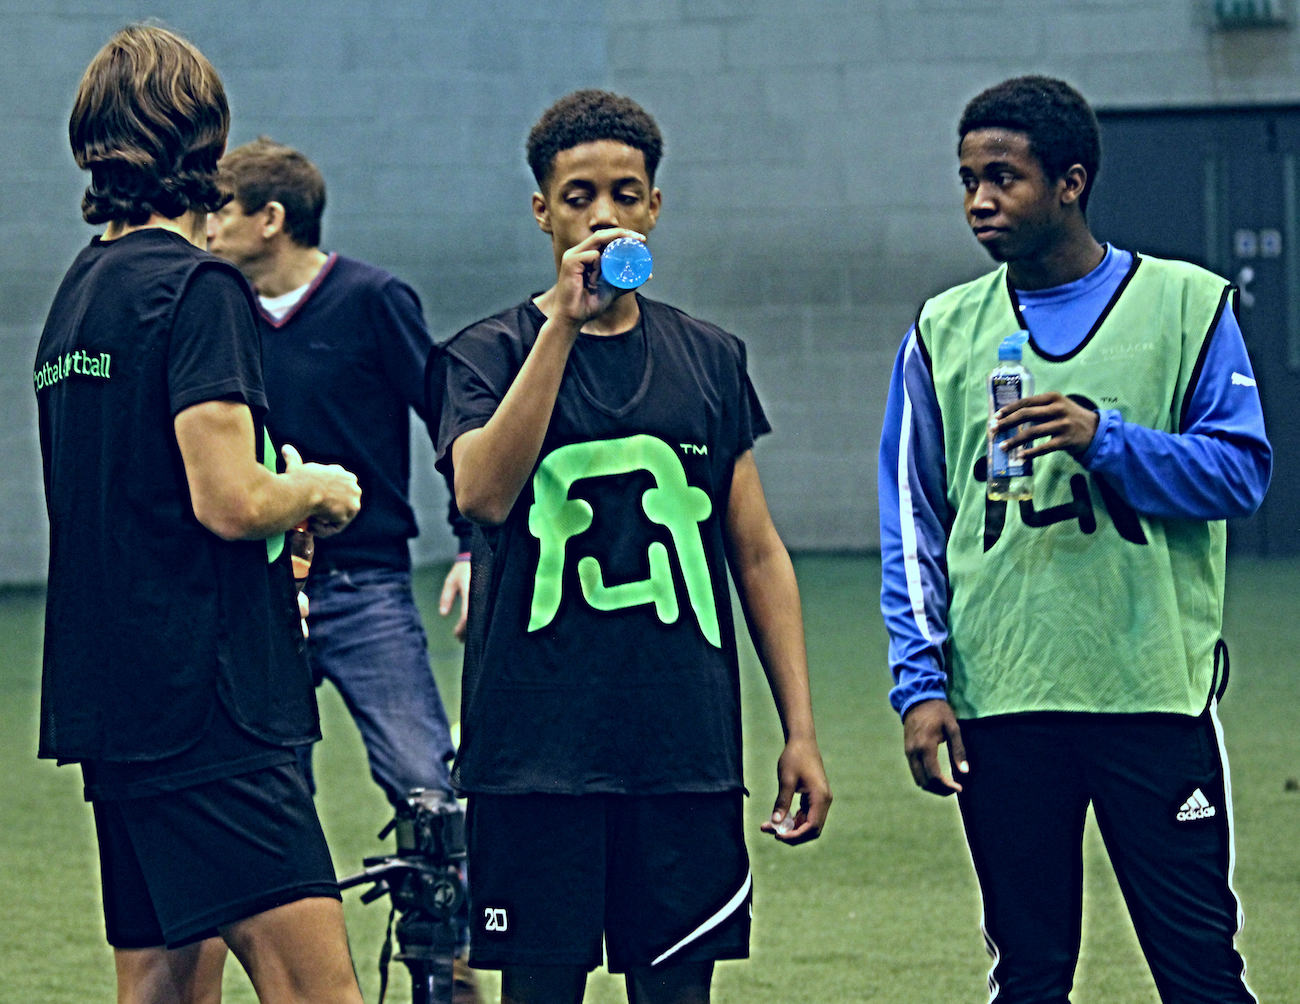 Academy_footballers_take_a_break_from_a_football_training_session